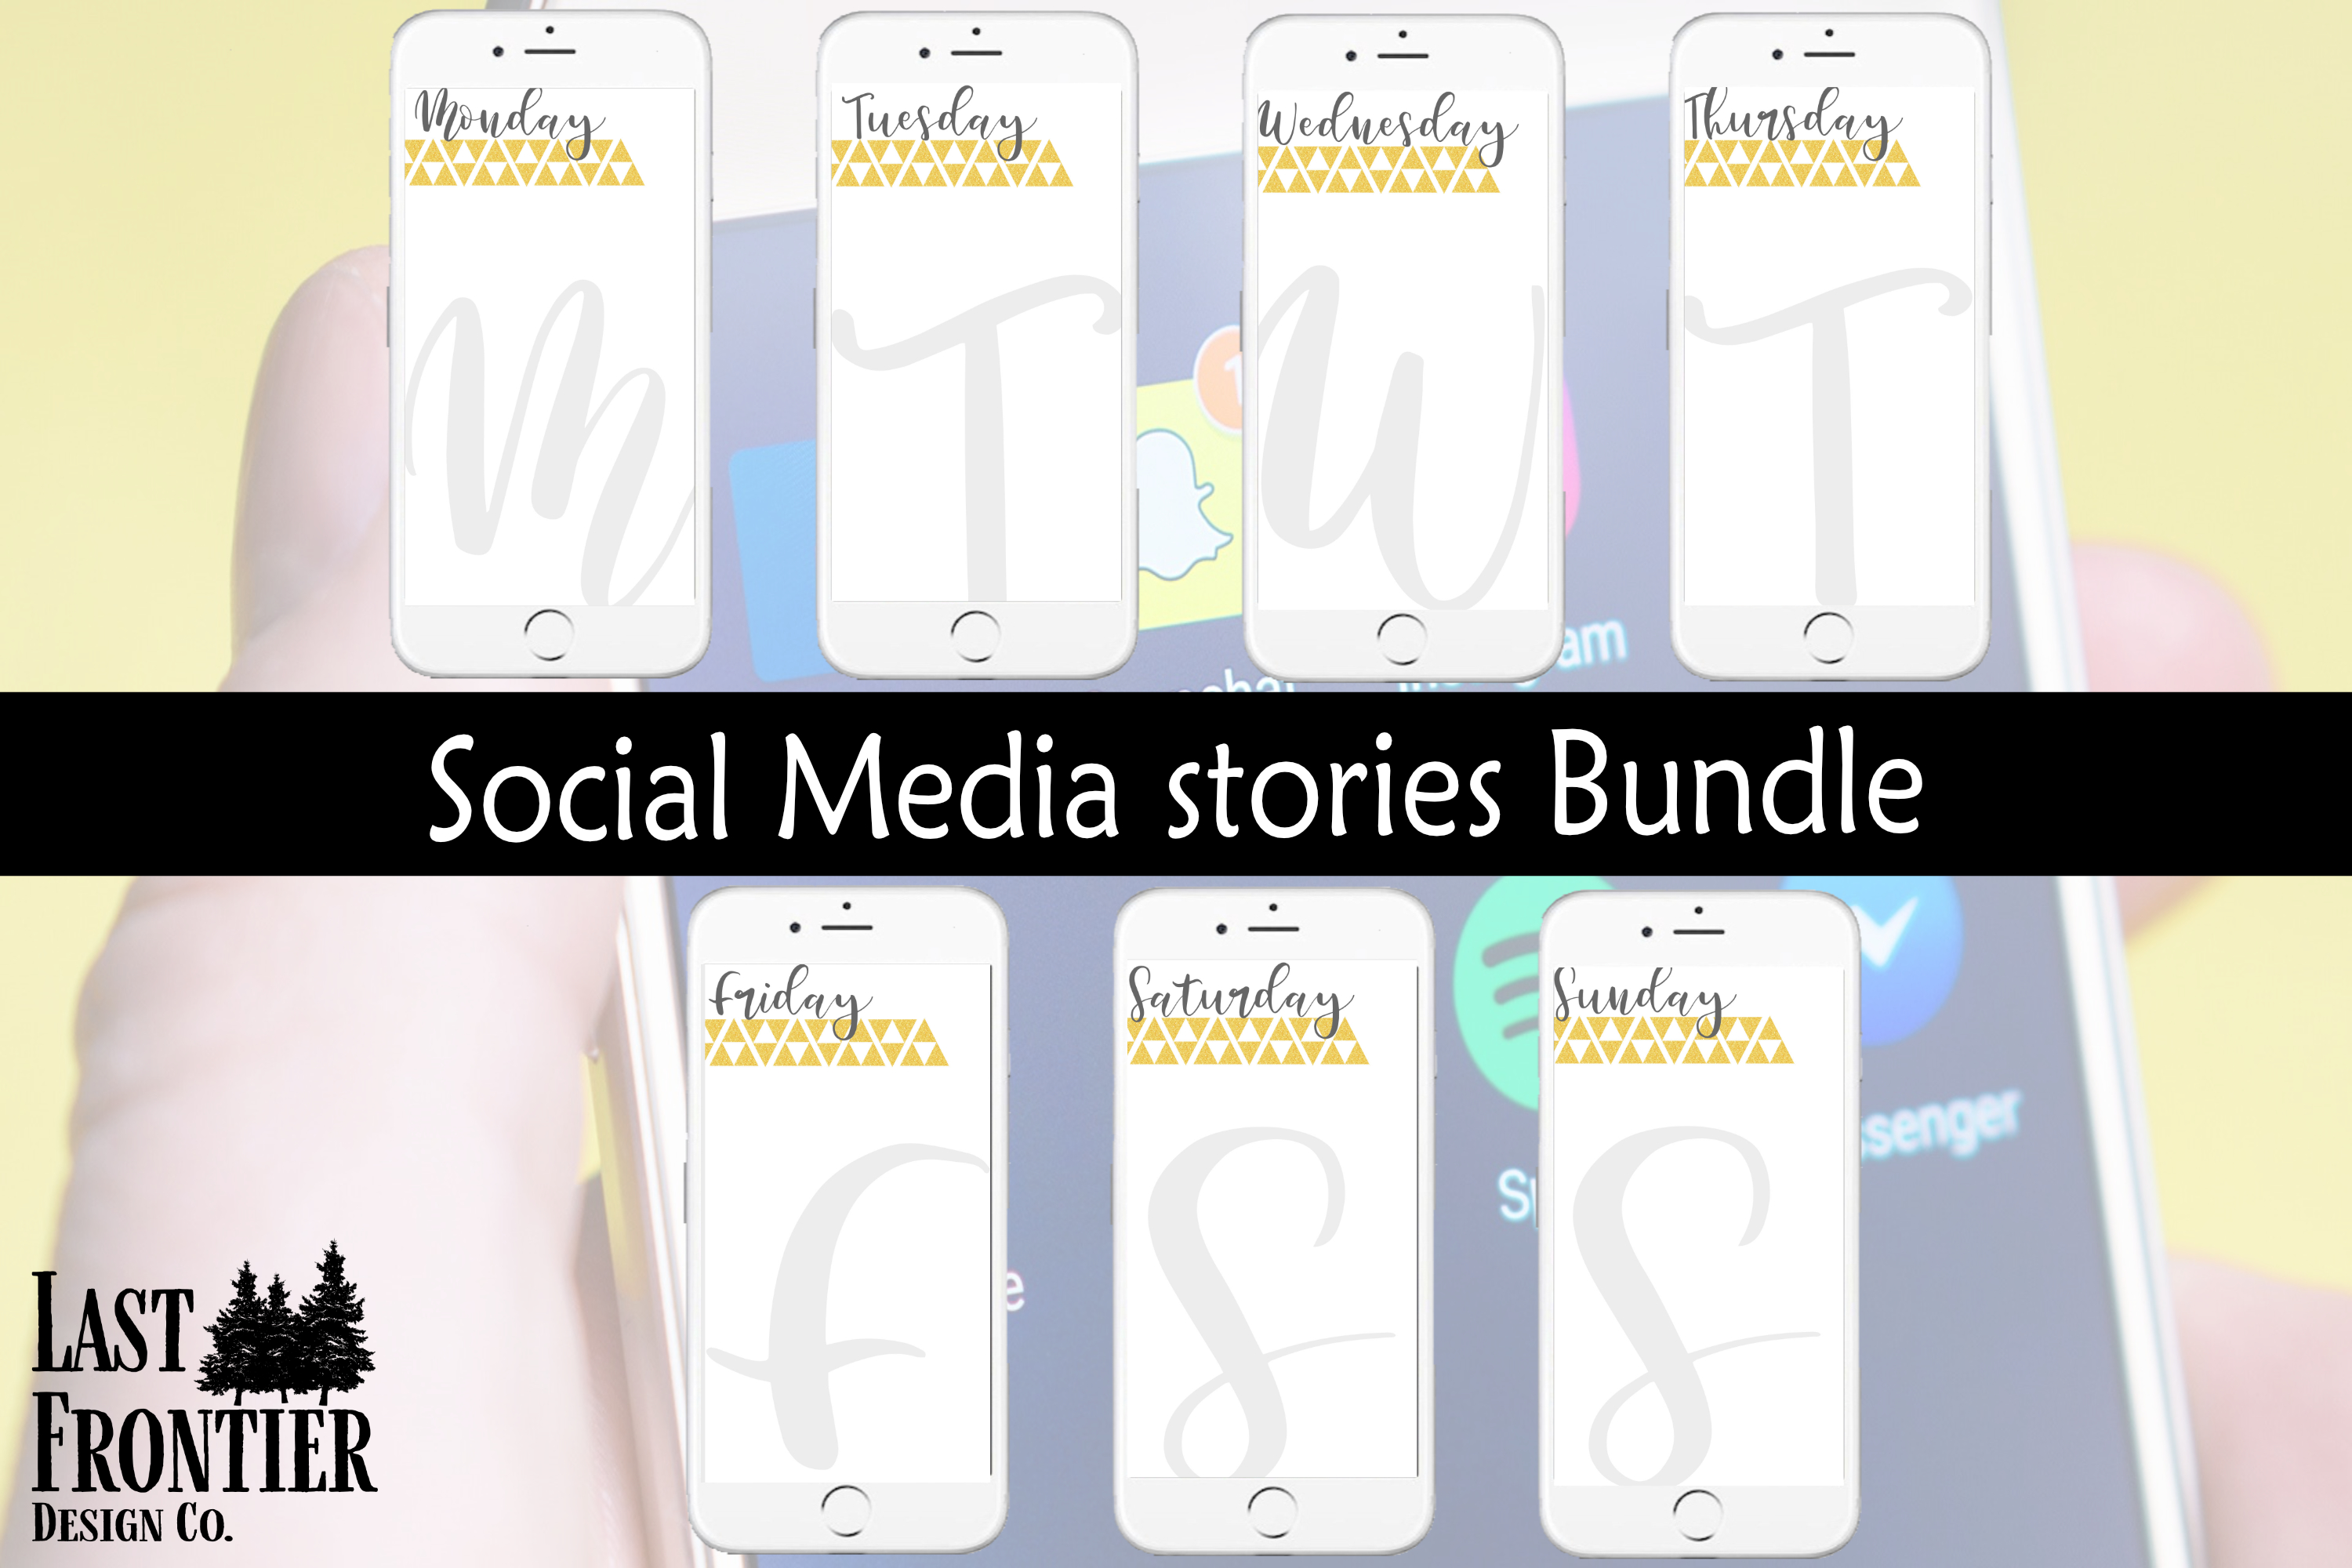 Days of the week social stories template example image 1